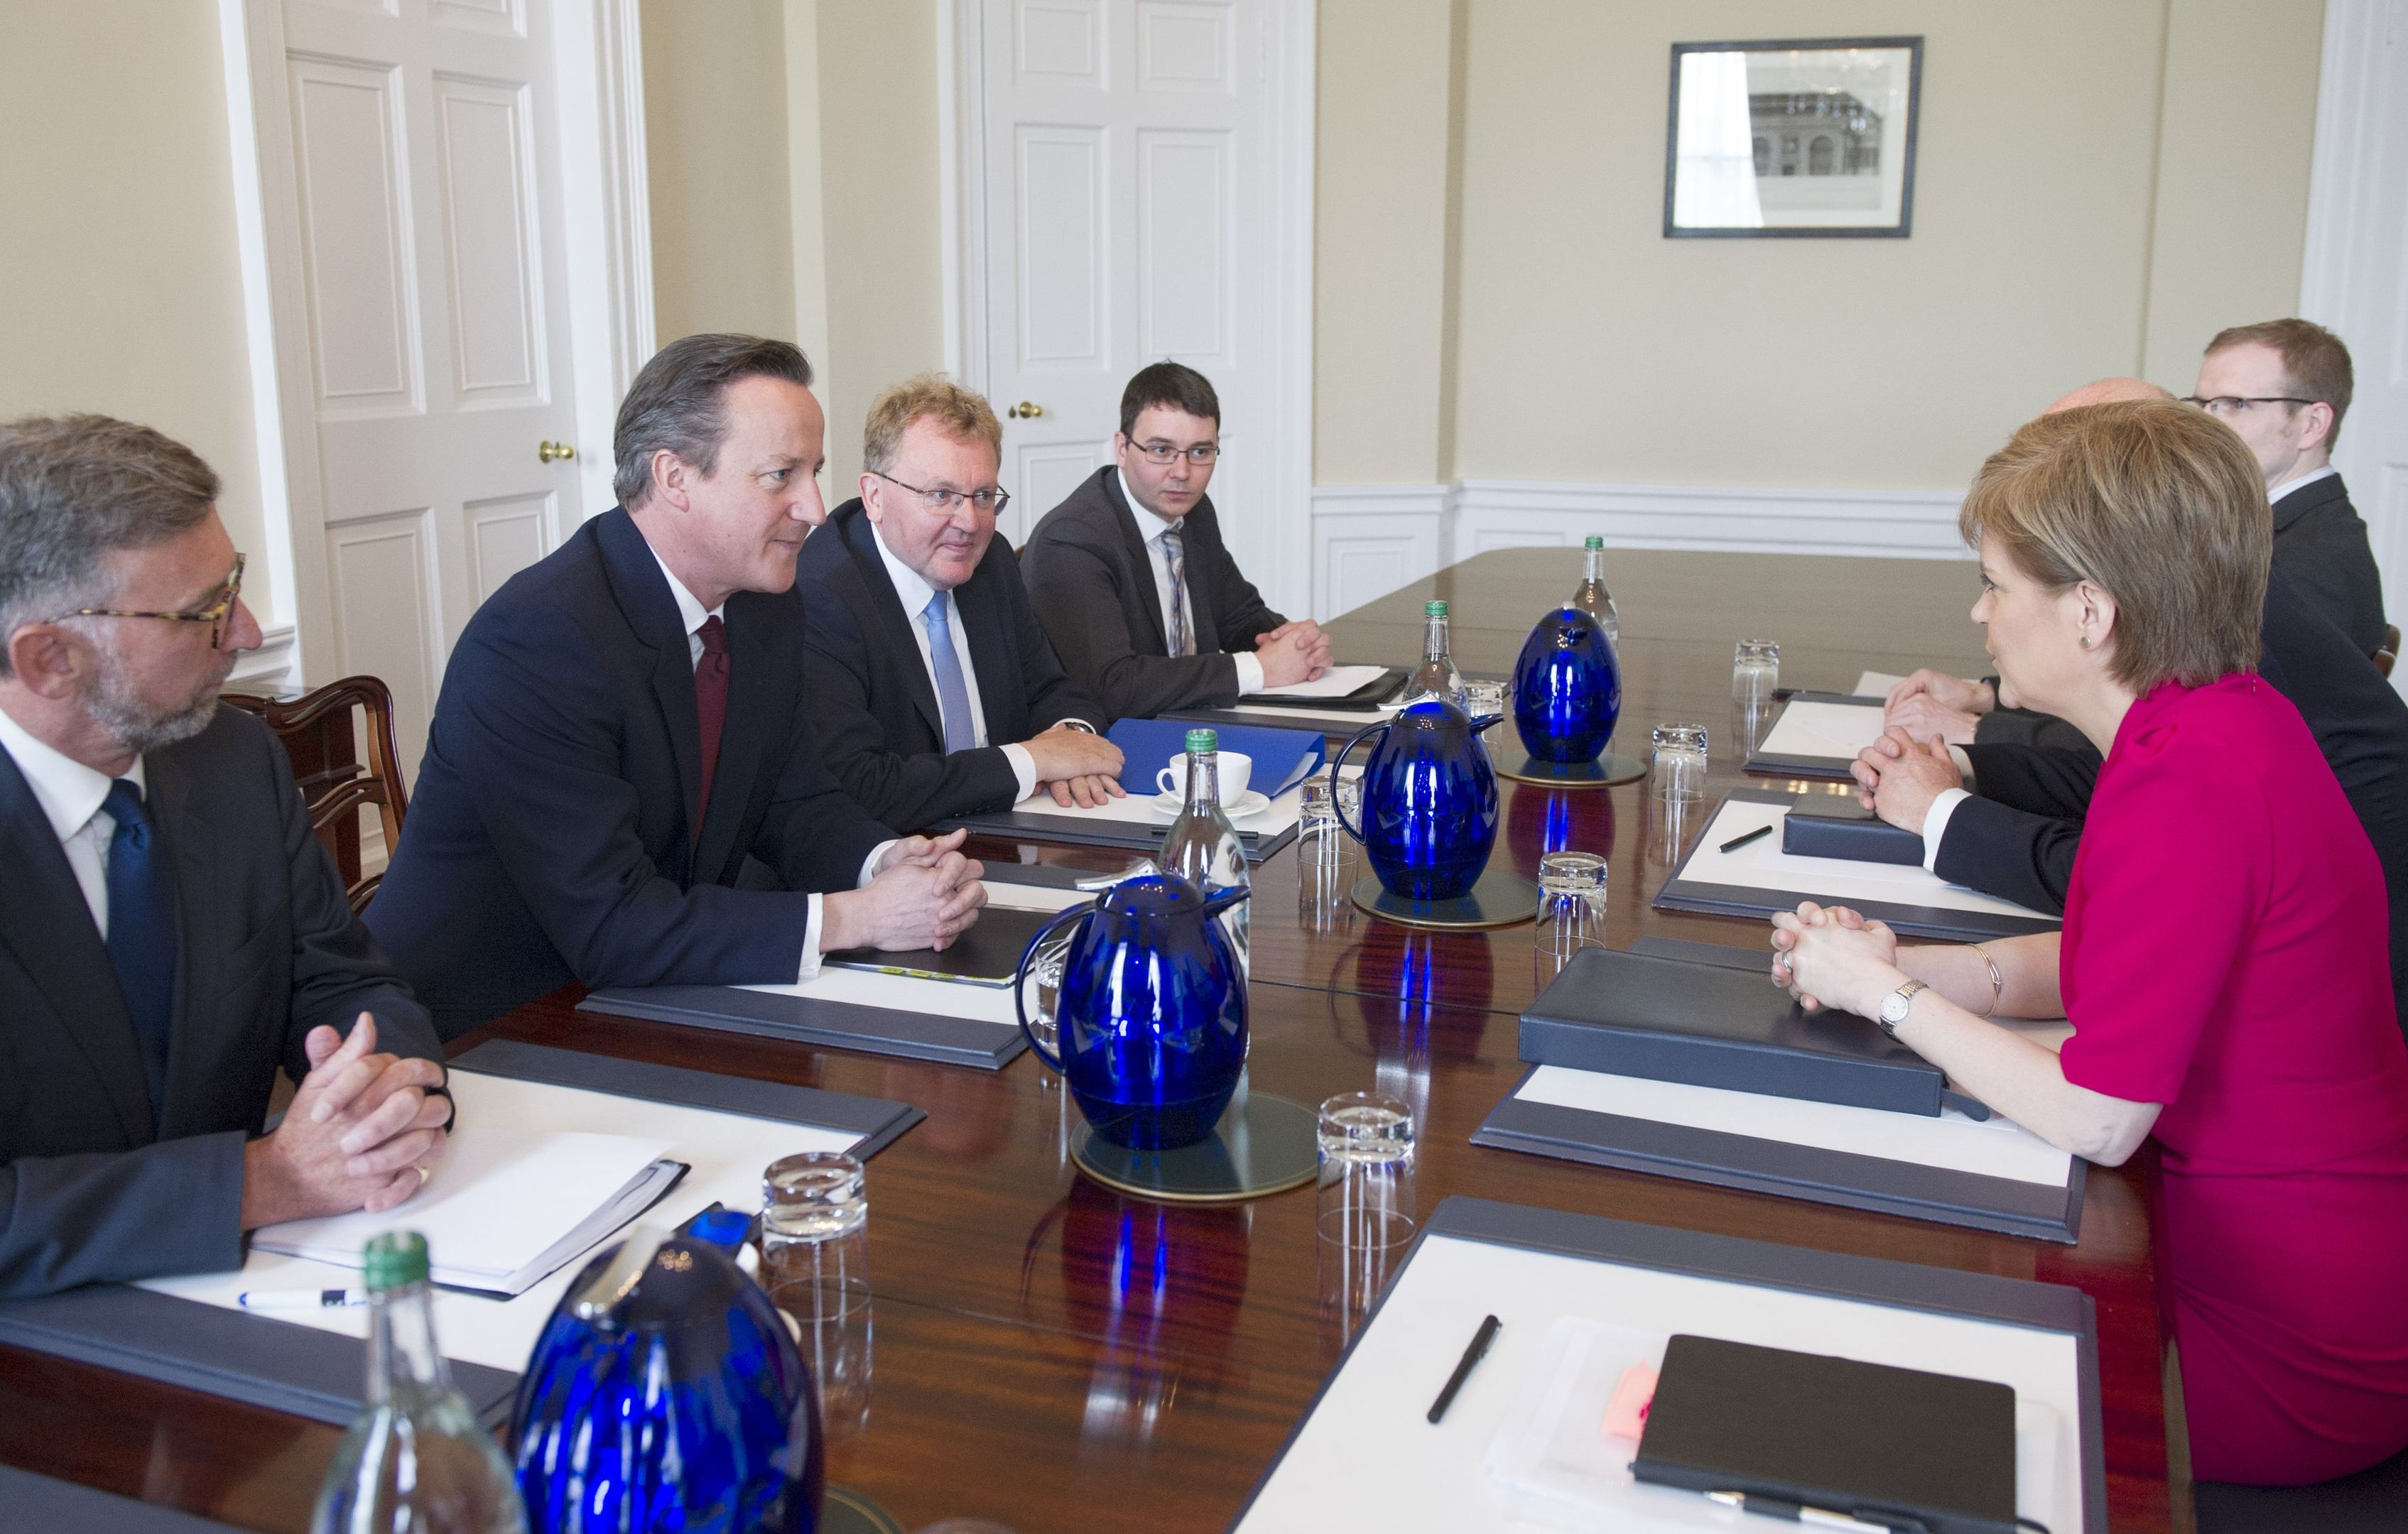 Prime Minister David Cameron (2nd left) meeting Scottish First Minister Nicola Sturgeon (right) at Bute House in Edinburgh.